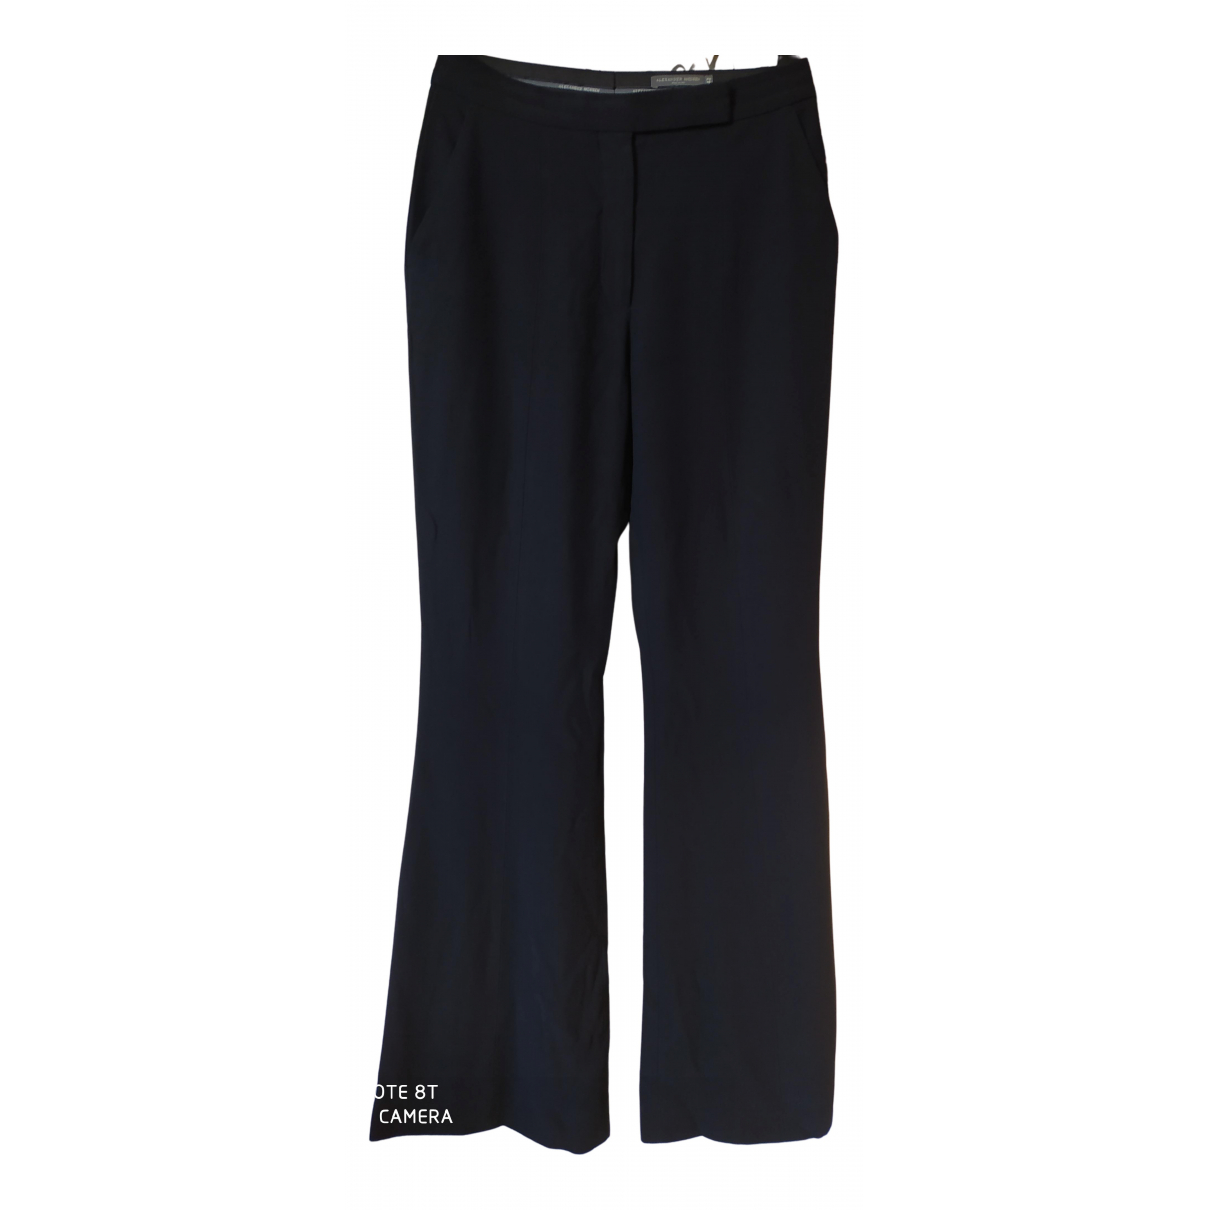 Alexander Mcqueen N Black Trousers for Women 42 IT